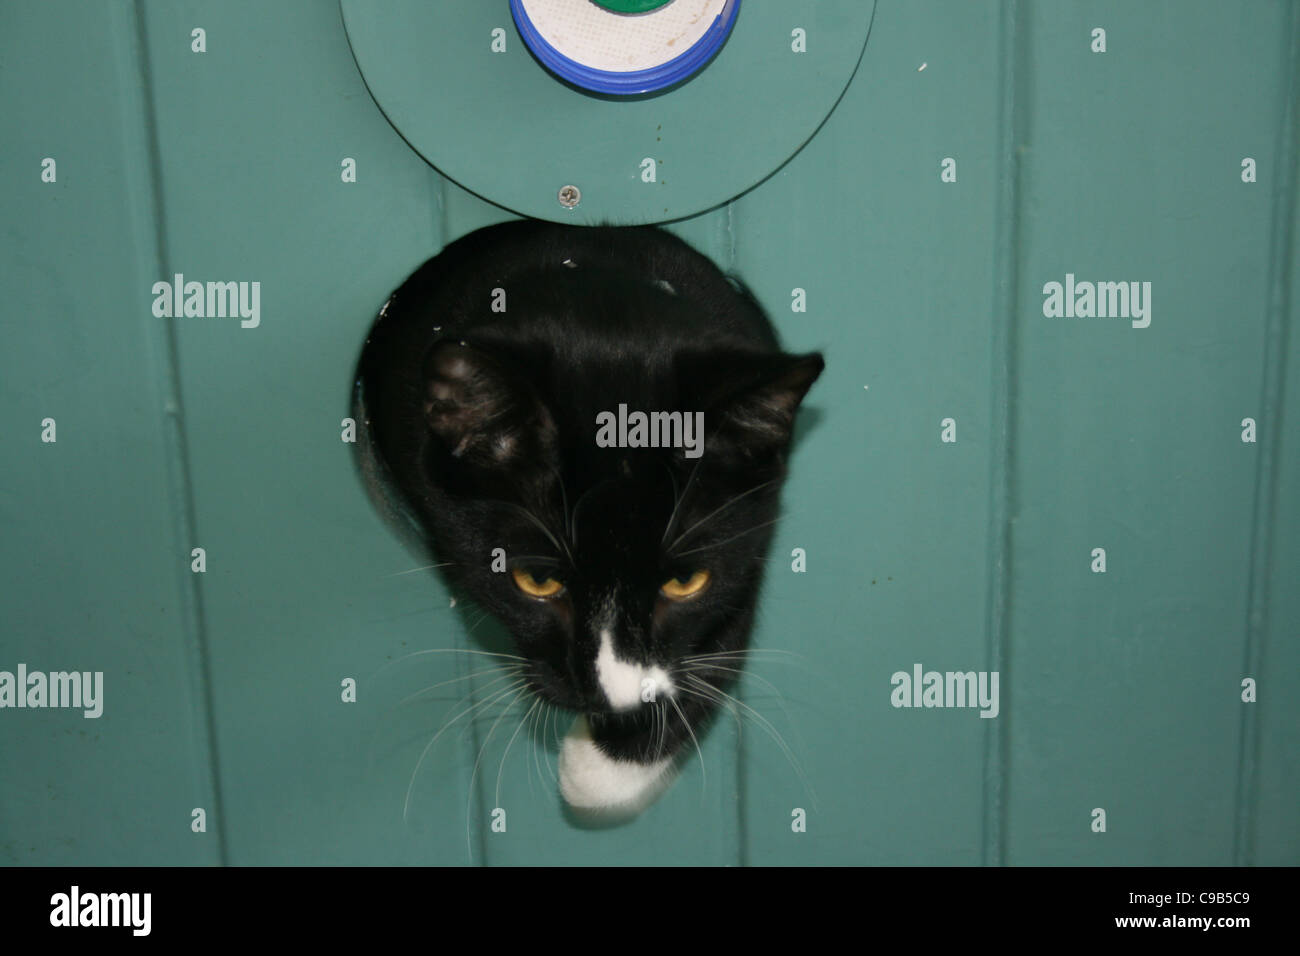 Black Male Cat With White Nose And Paw Emerging From Cat Hole In Green Door.